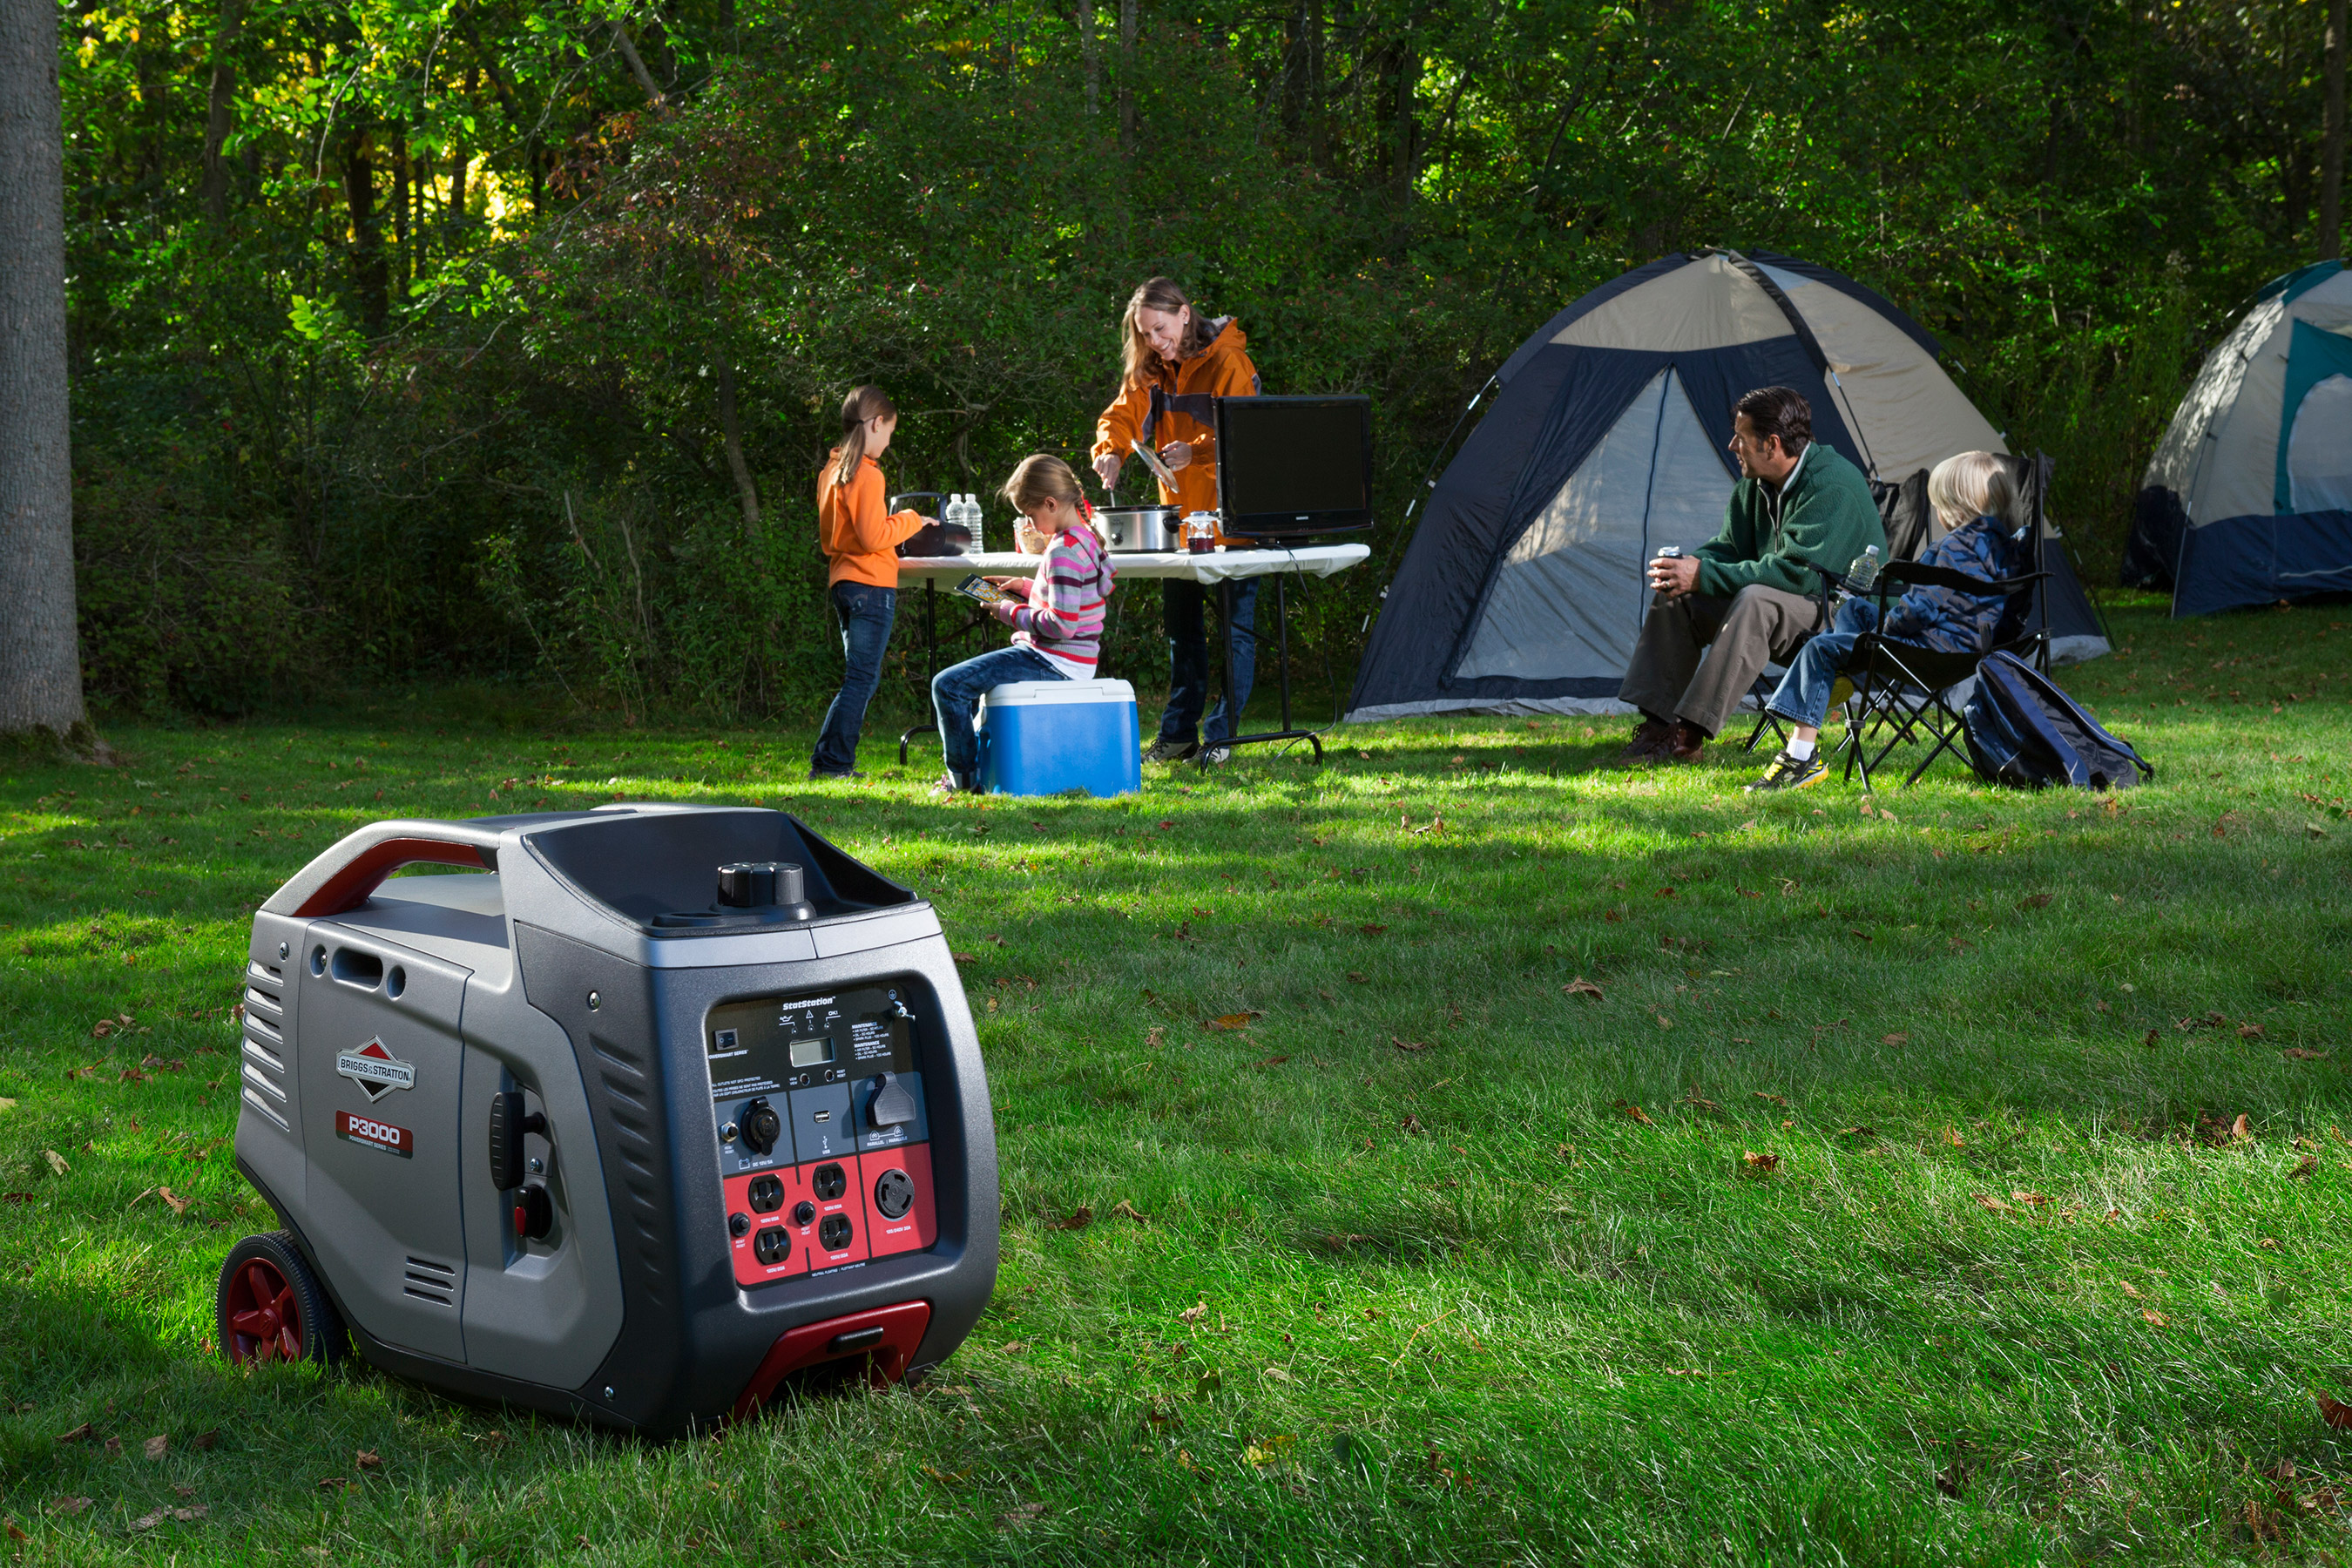 Camping just got easier. With the Briggs & Stratton 3kW Inverter Generator, campers can rely on a portable companion that features quiet and smoother power traditional camping generators can't match, with features such as USB port for portable electronics and, a luggage-style handle for easy carrying.